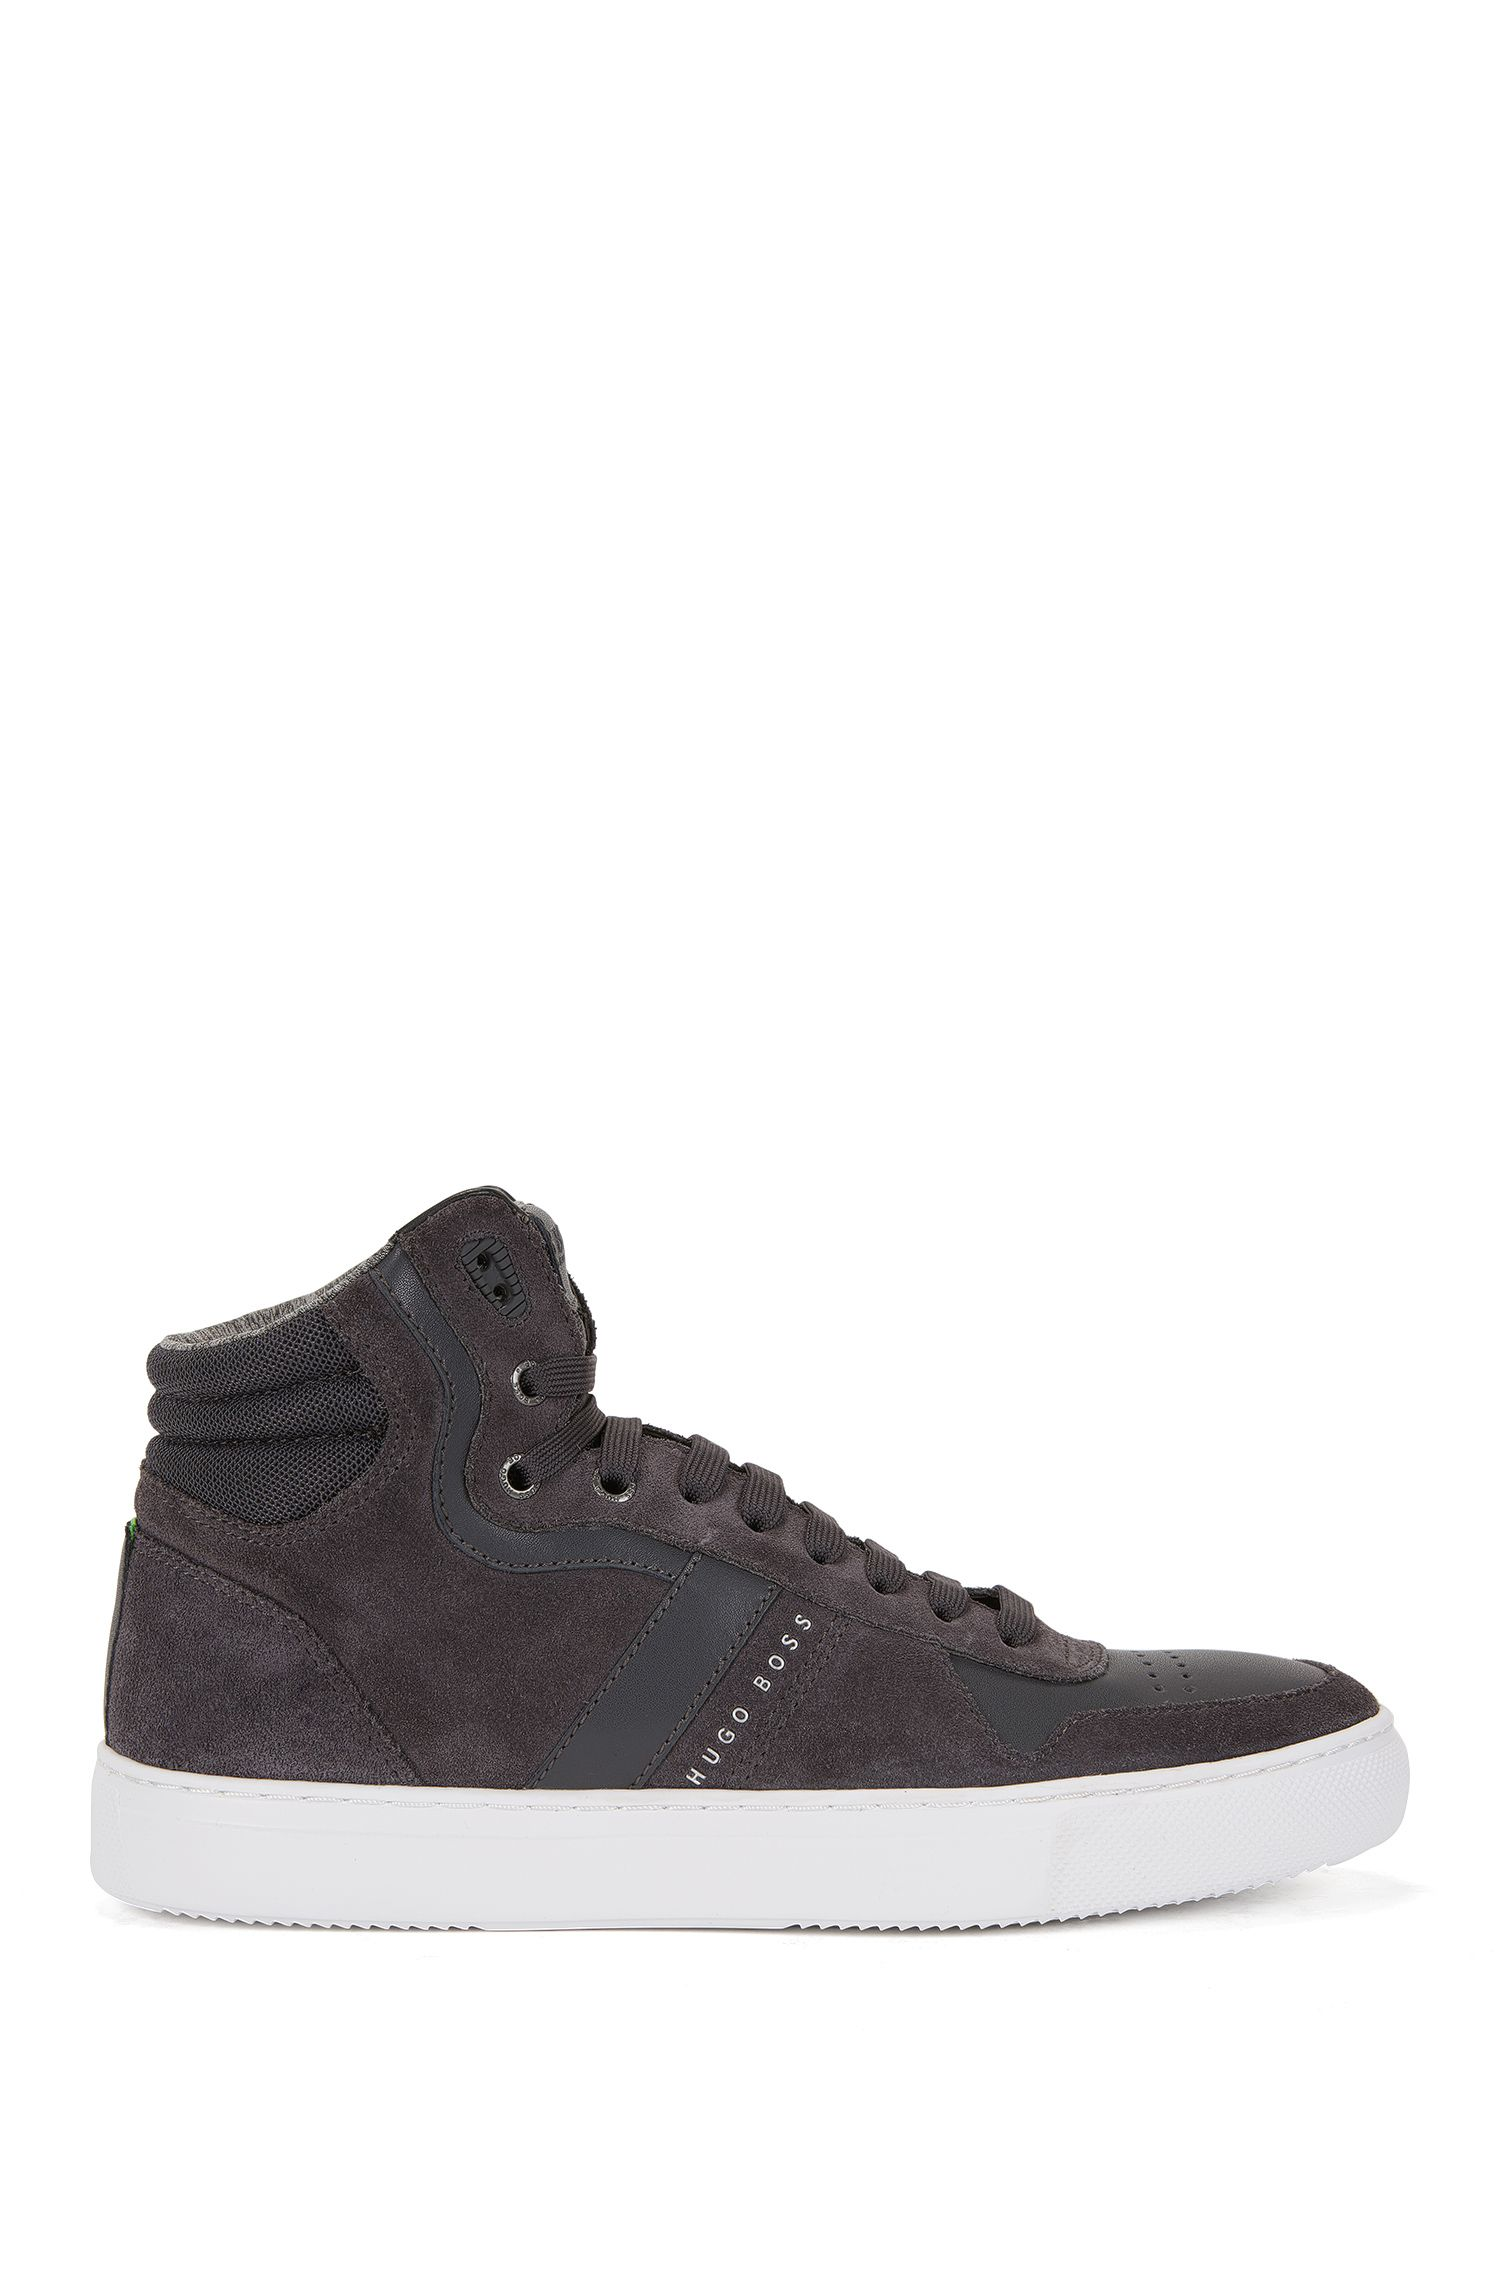 Sneakers high-top in pelle e pelle scamosciata